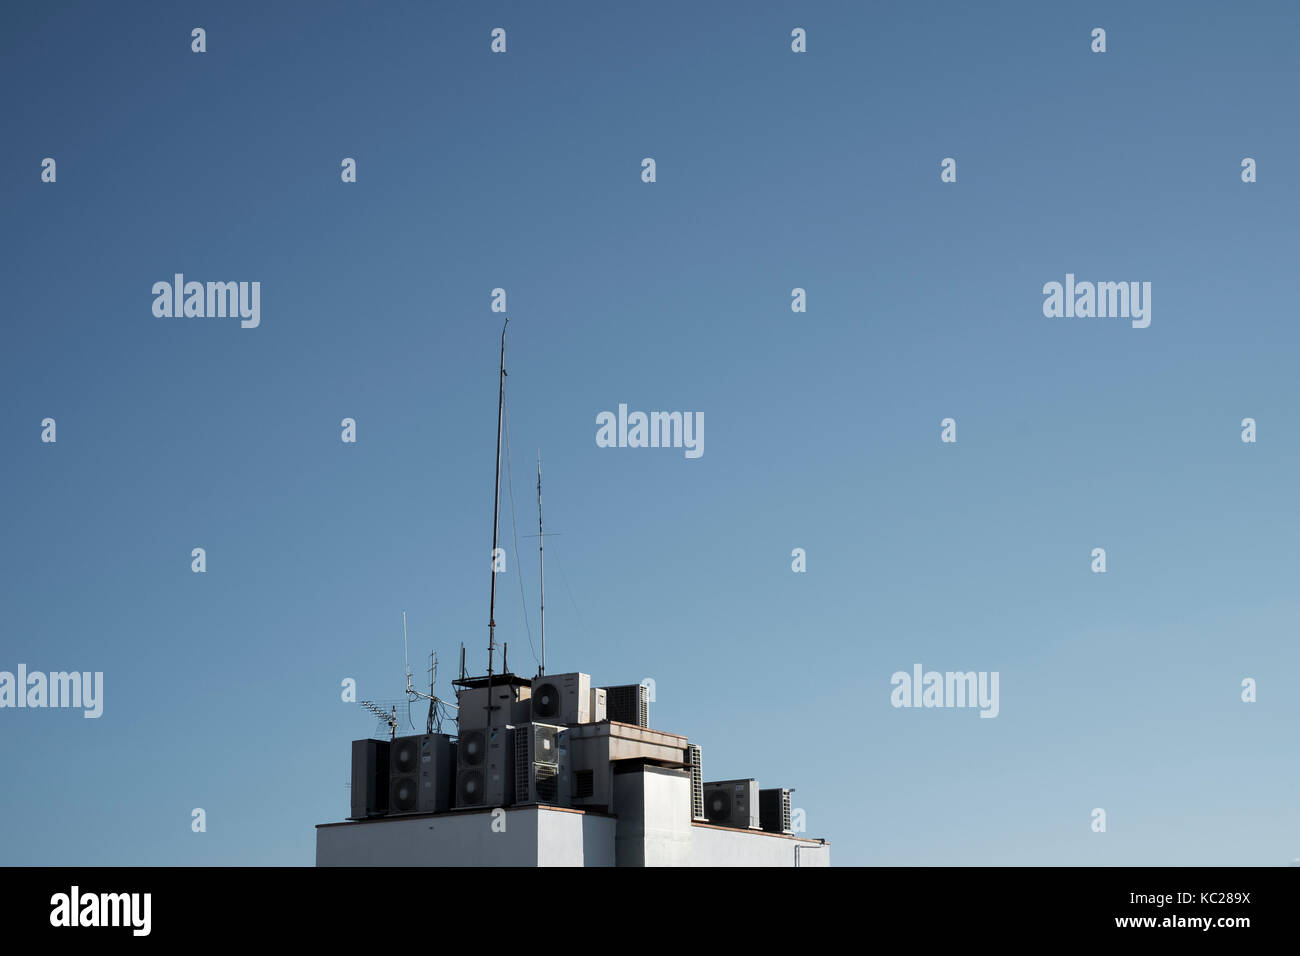 Air conditioning units and aerials above a residential property in Lloret de Mar Stock Photo